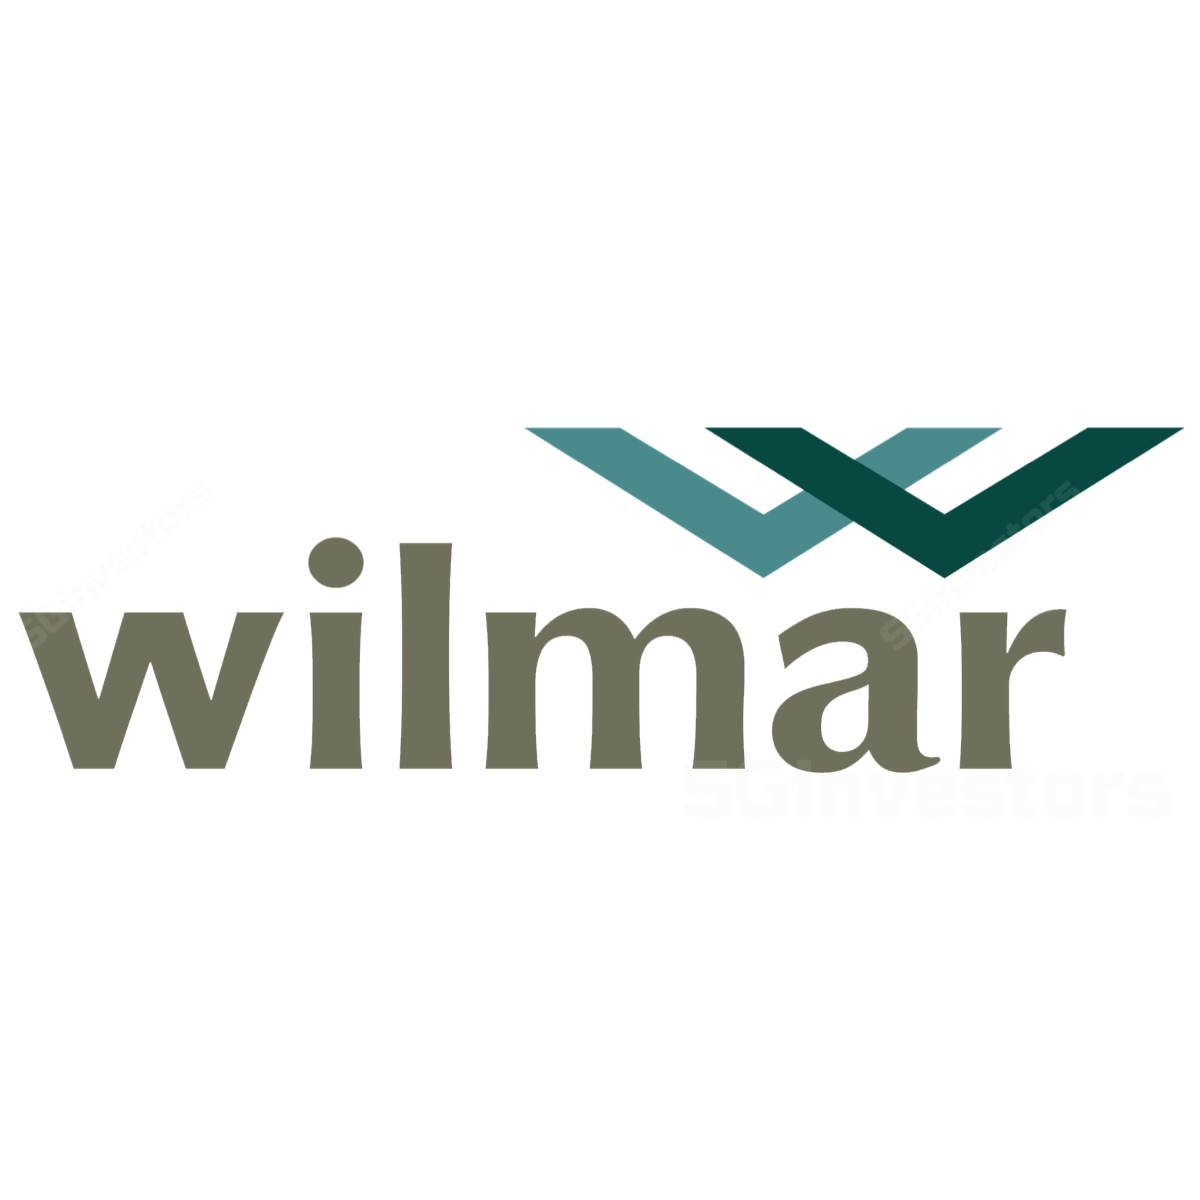 Wilmar International (WIL SP) - UOB Kay Hian 2017-11-15: Buy On Weakness; Better Outlook